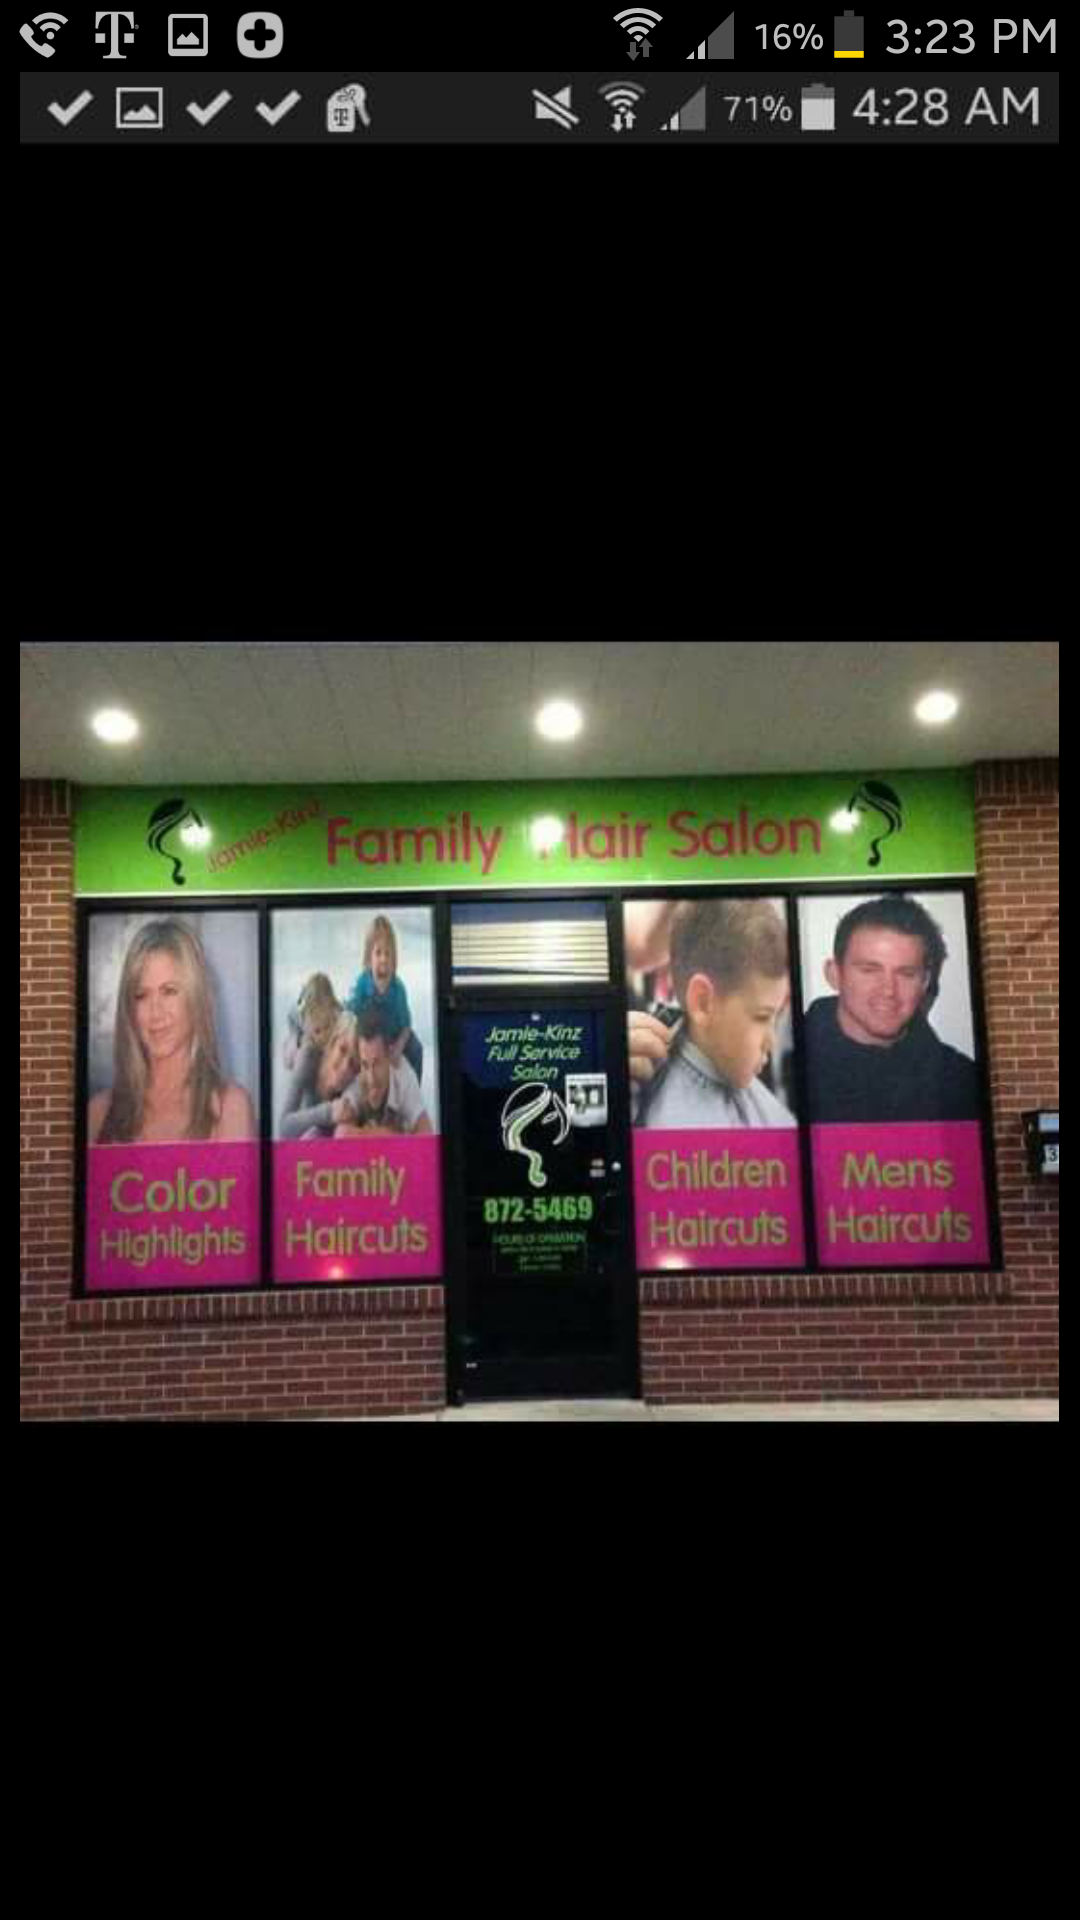 Jamie Kinz Family Hair Salon 301 N Main St Noble Ok 73068 Yp